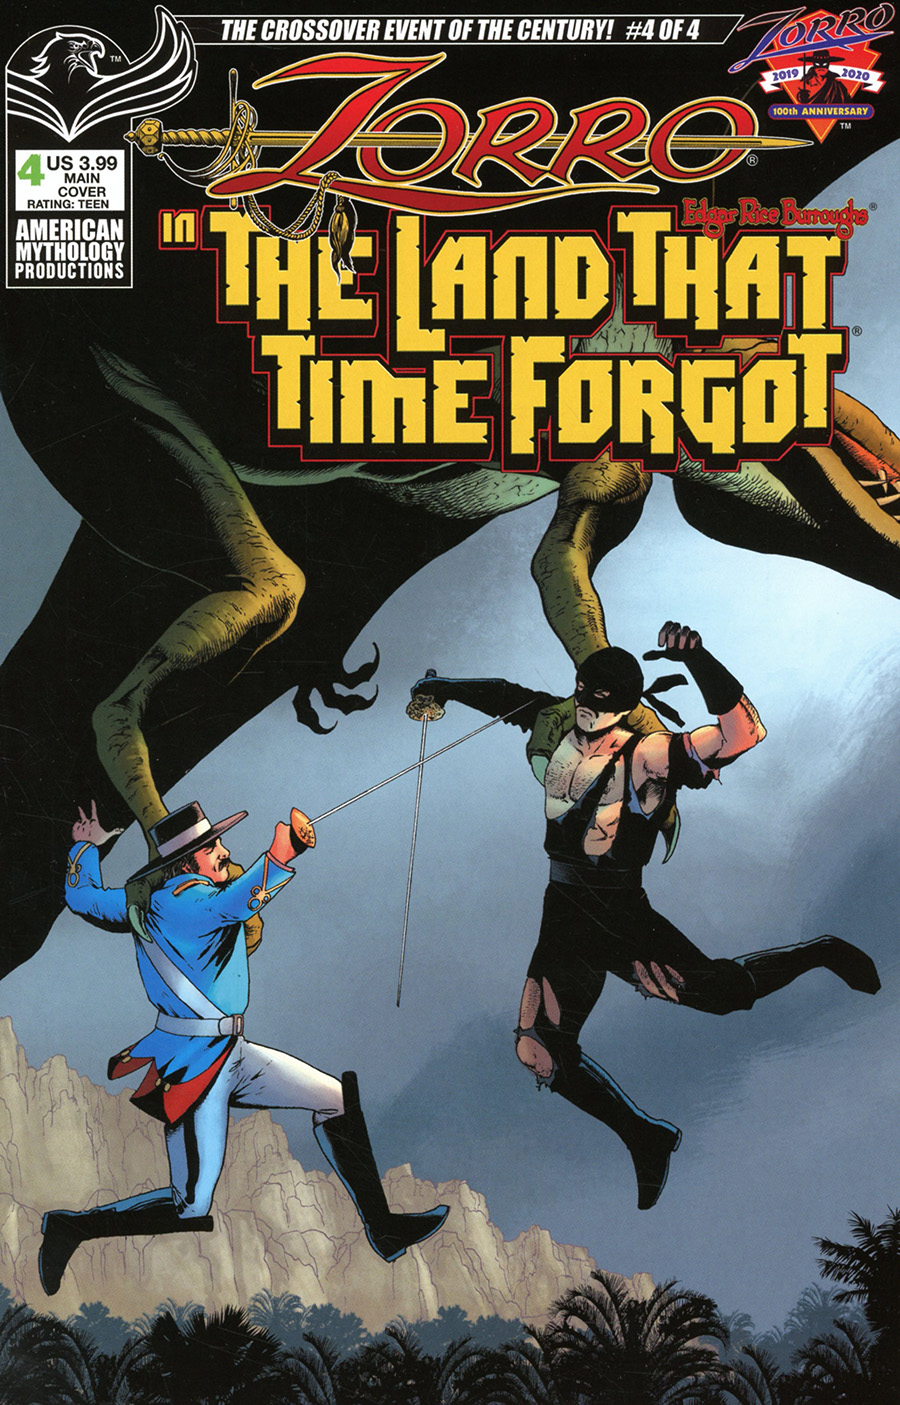 Zorro In The Land That Time Forgot #4 Cover A Regular Mike Wolfer Cover